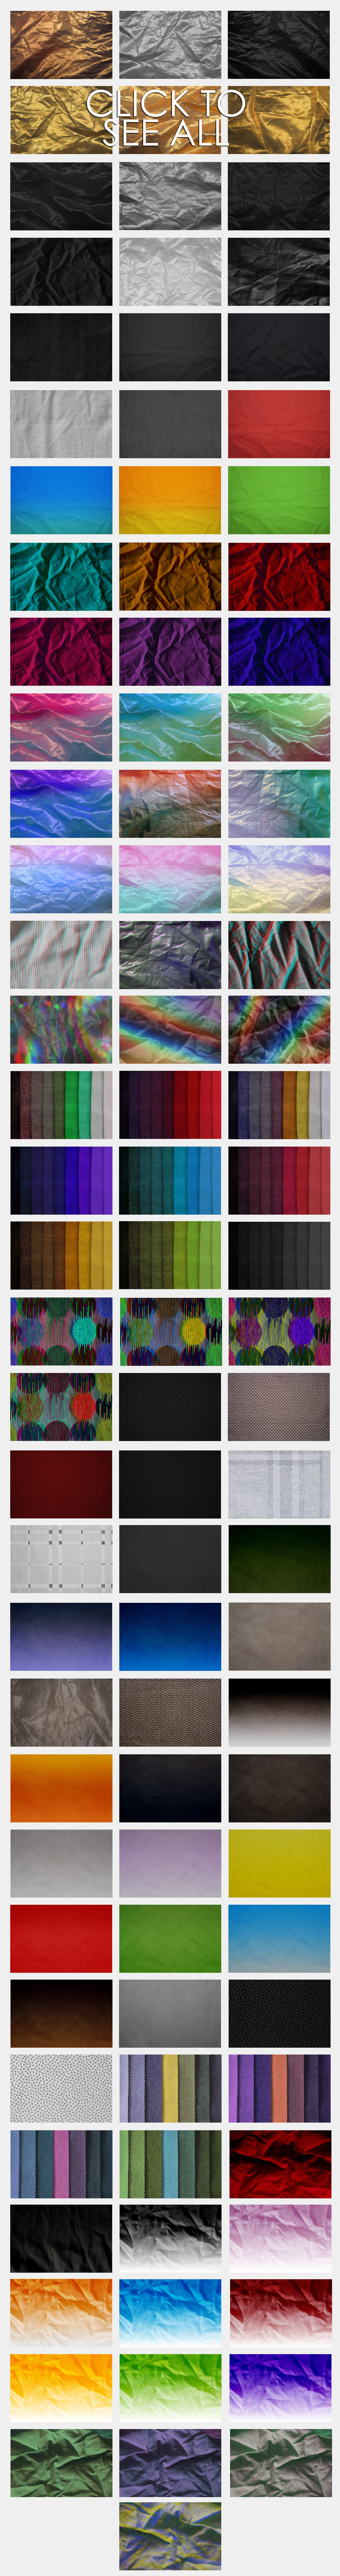 Textile & Fabric Backgrounds example image 4